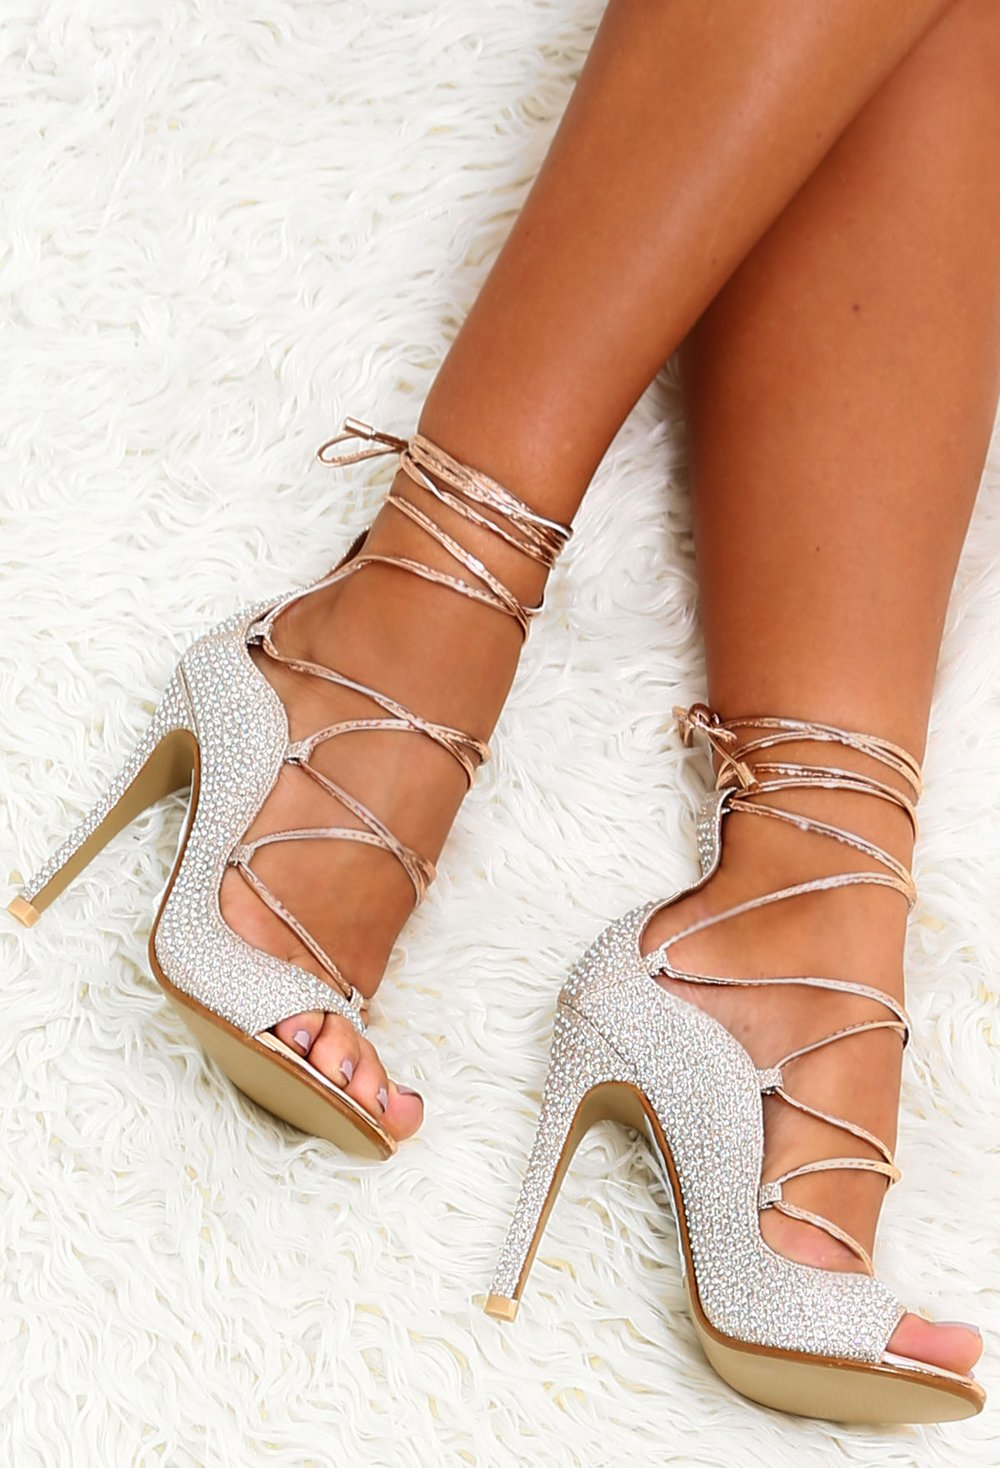 crystal embellishments lace up heels